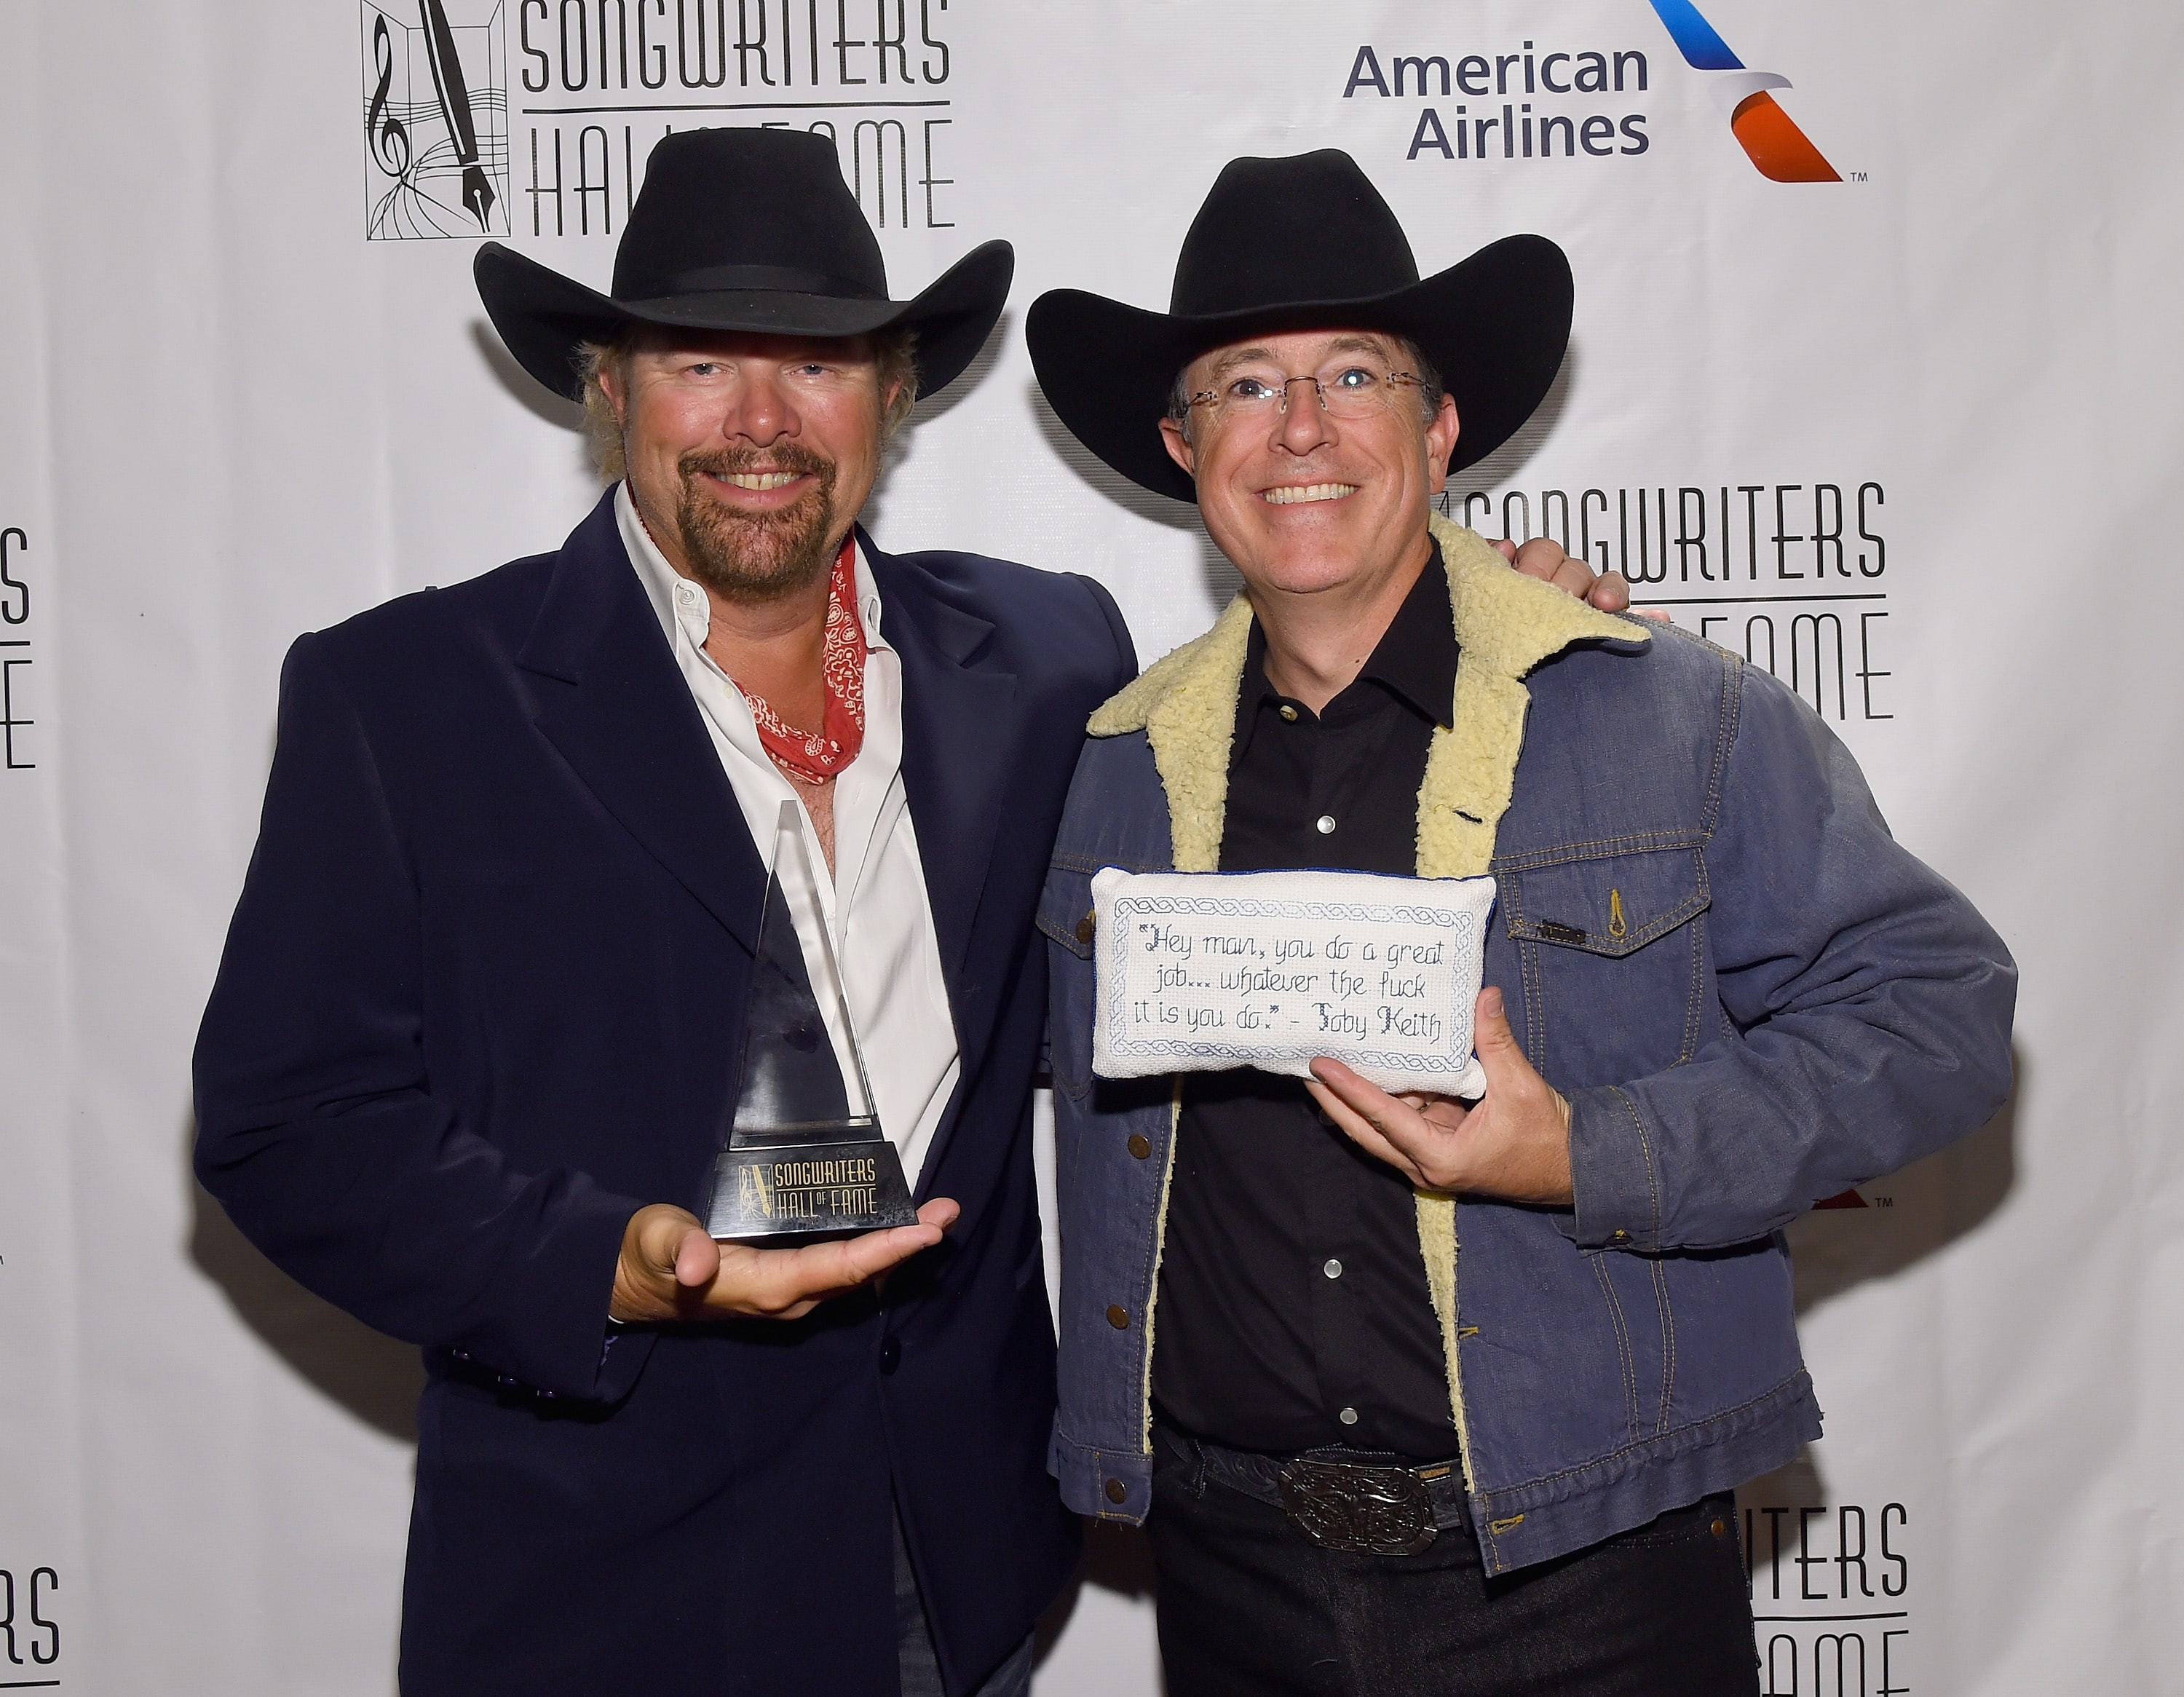 Toby Keith and Stephen Colbert (Photo: Larry Busacca)